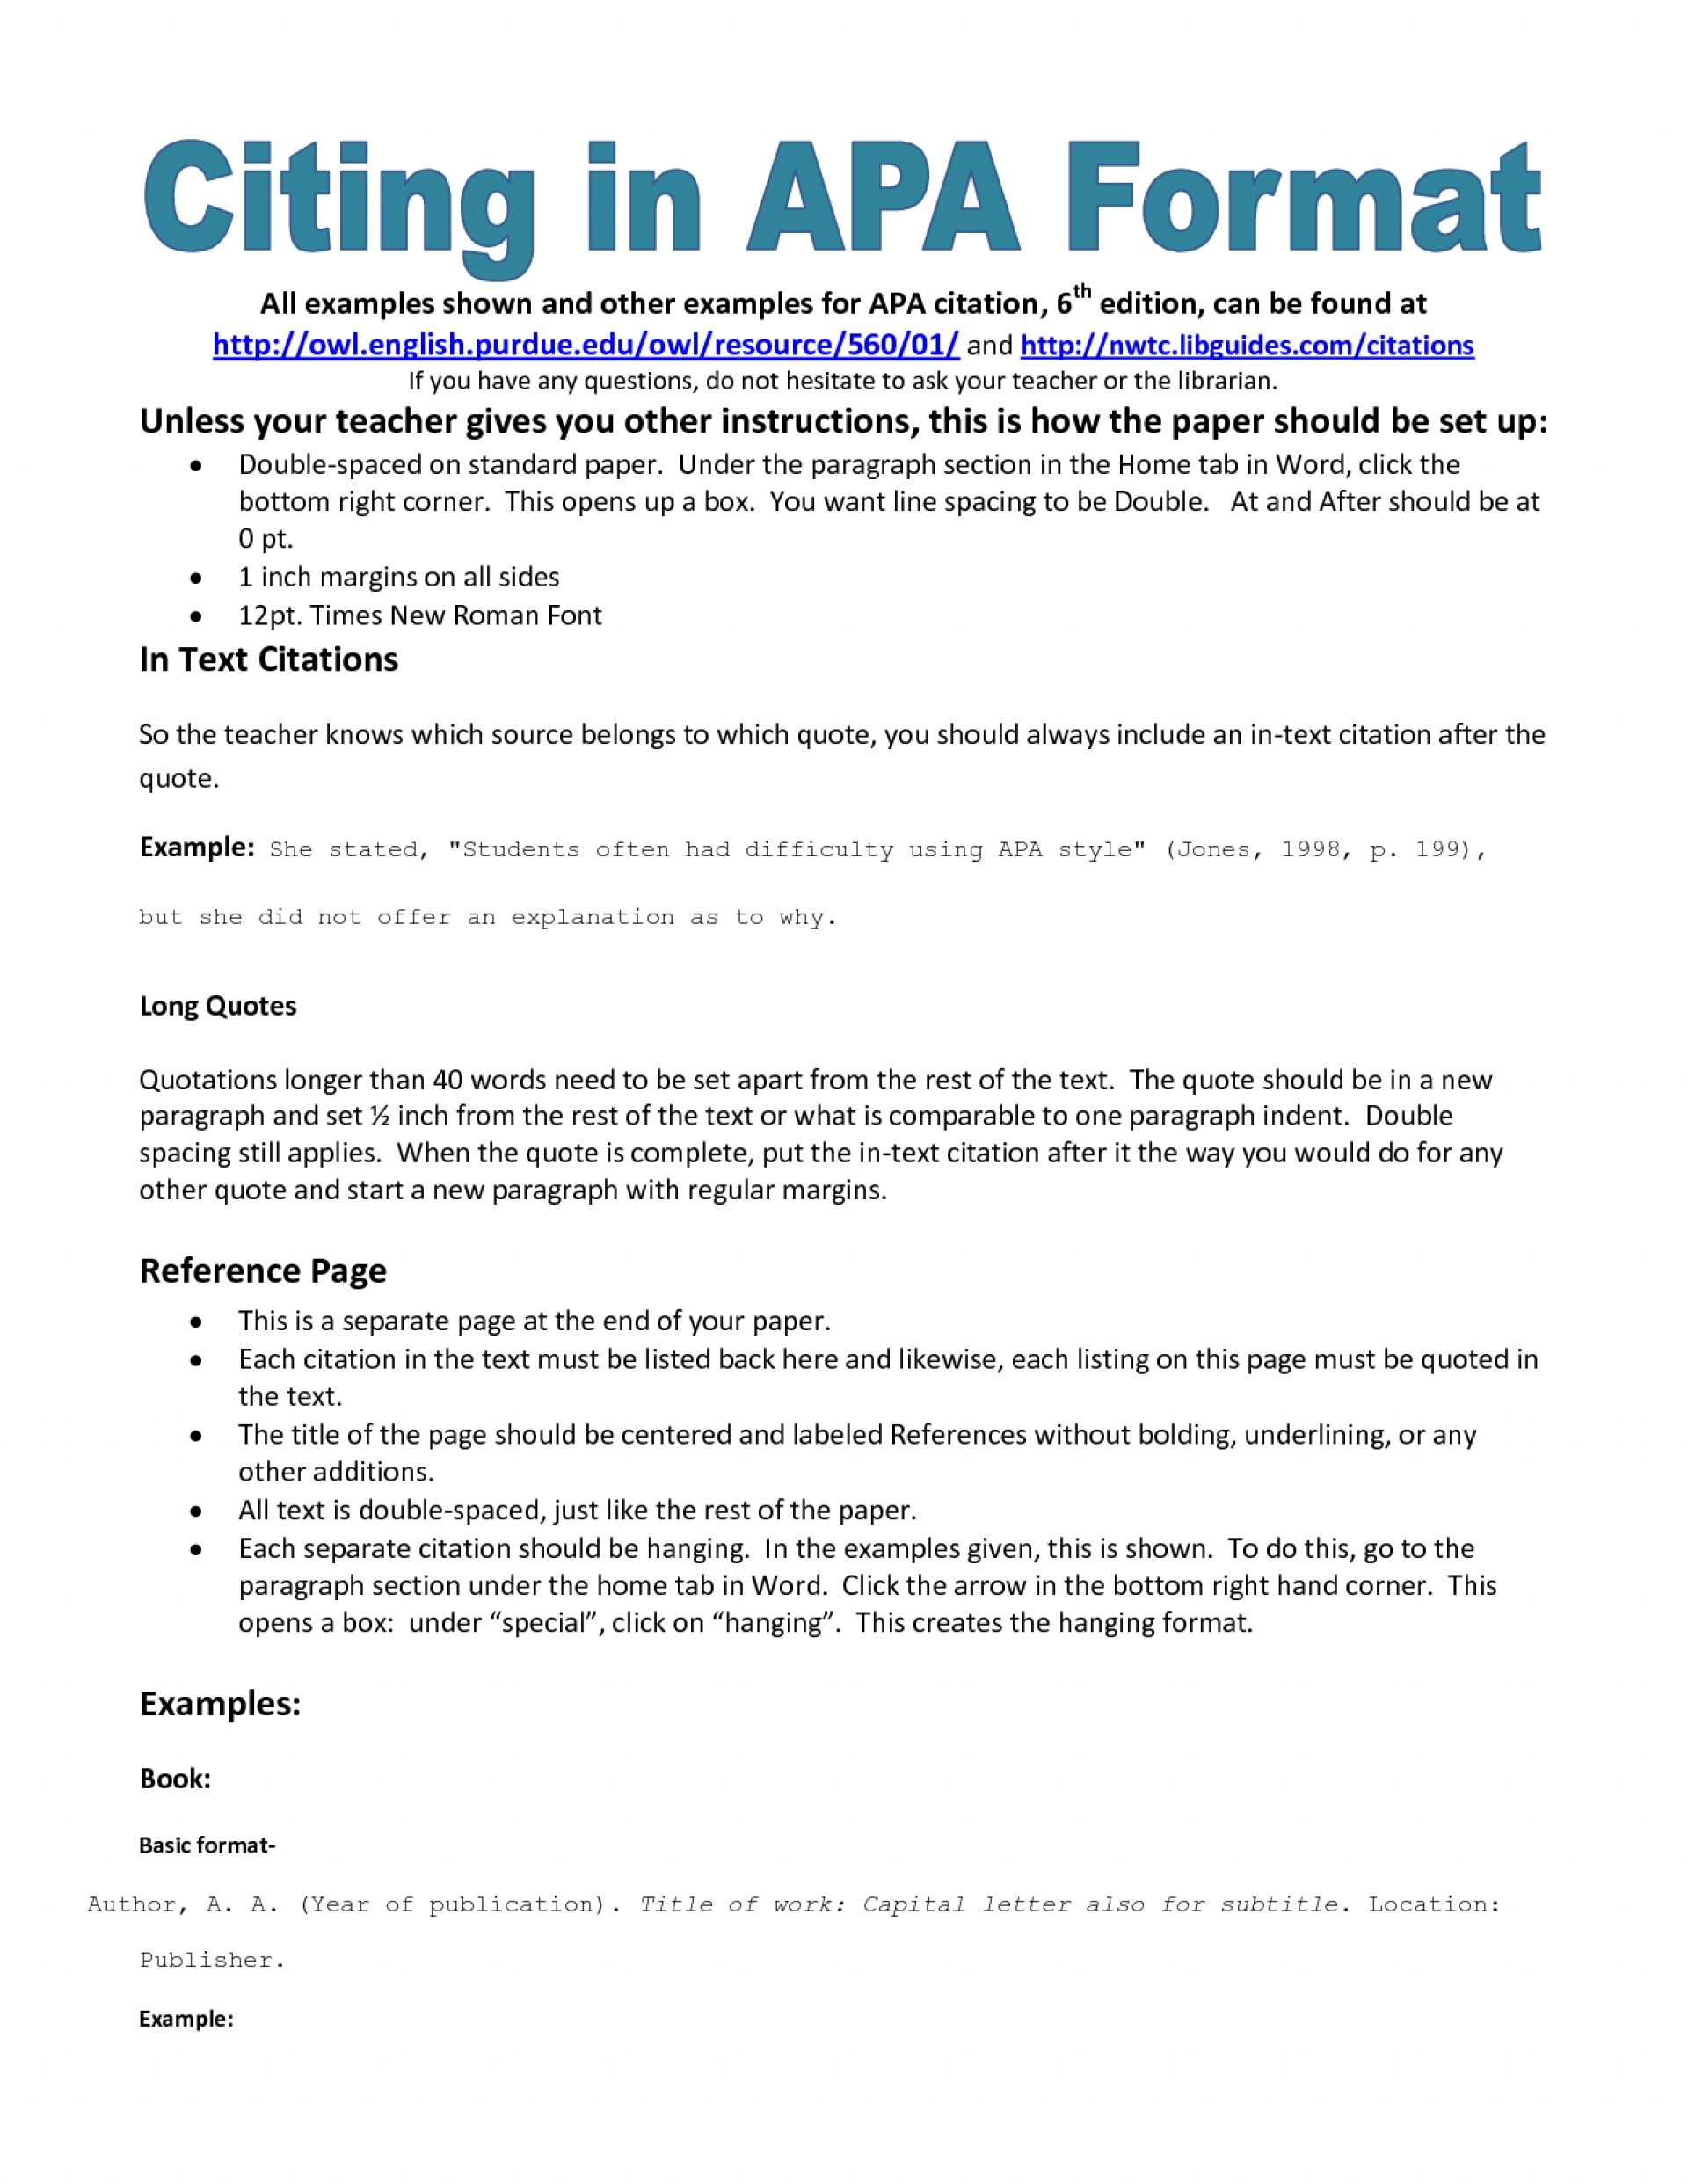 006 Essay Format Apa Fantastic Sample 500 Word Cover Page 1920